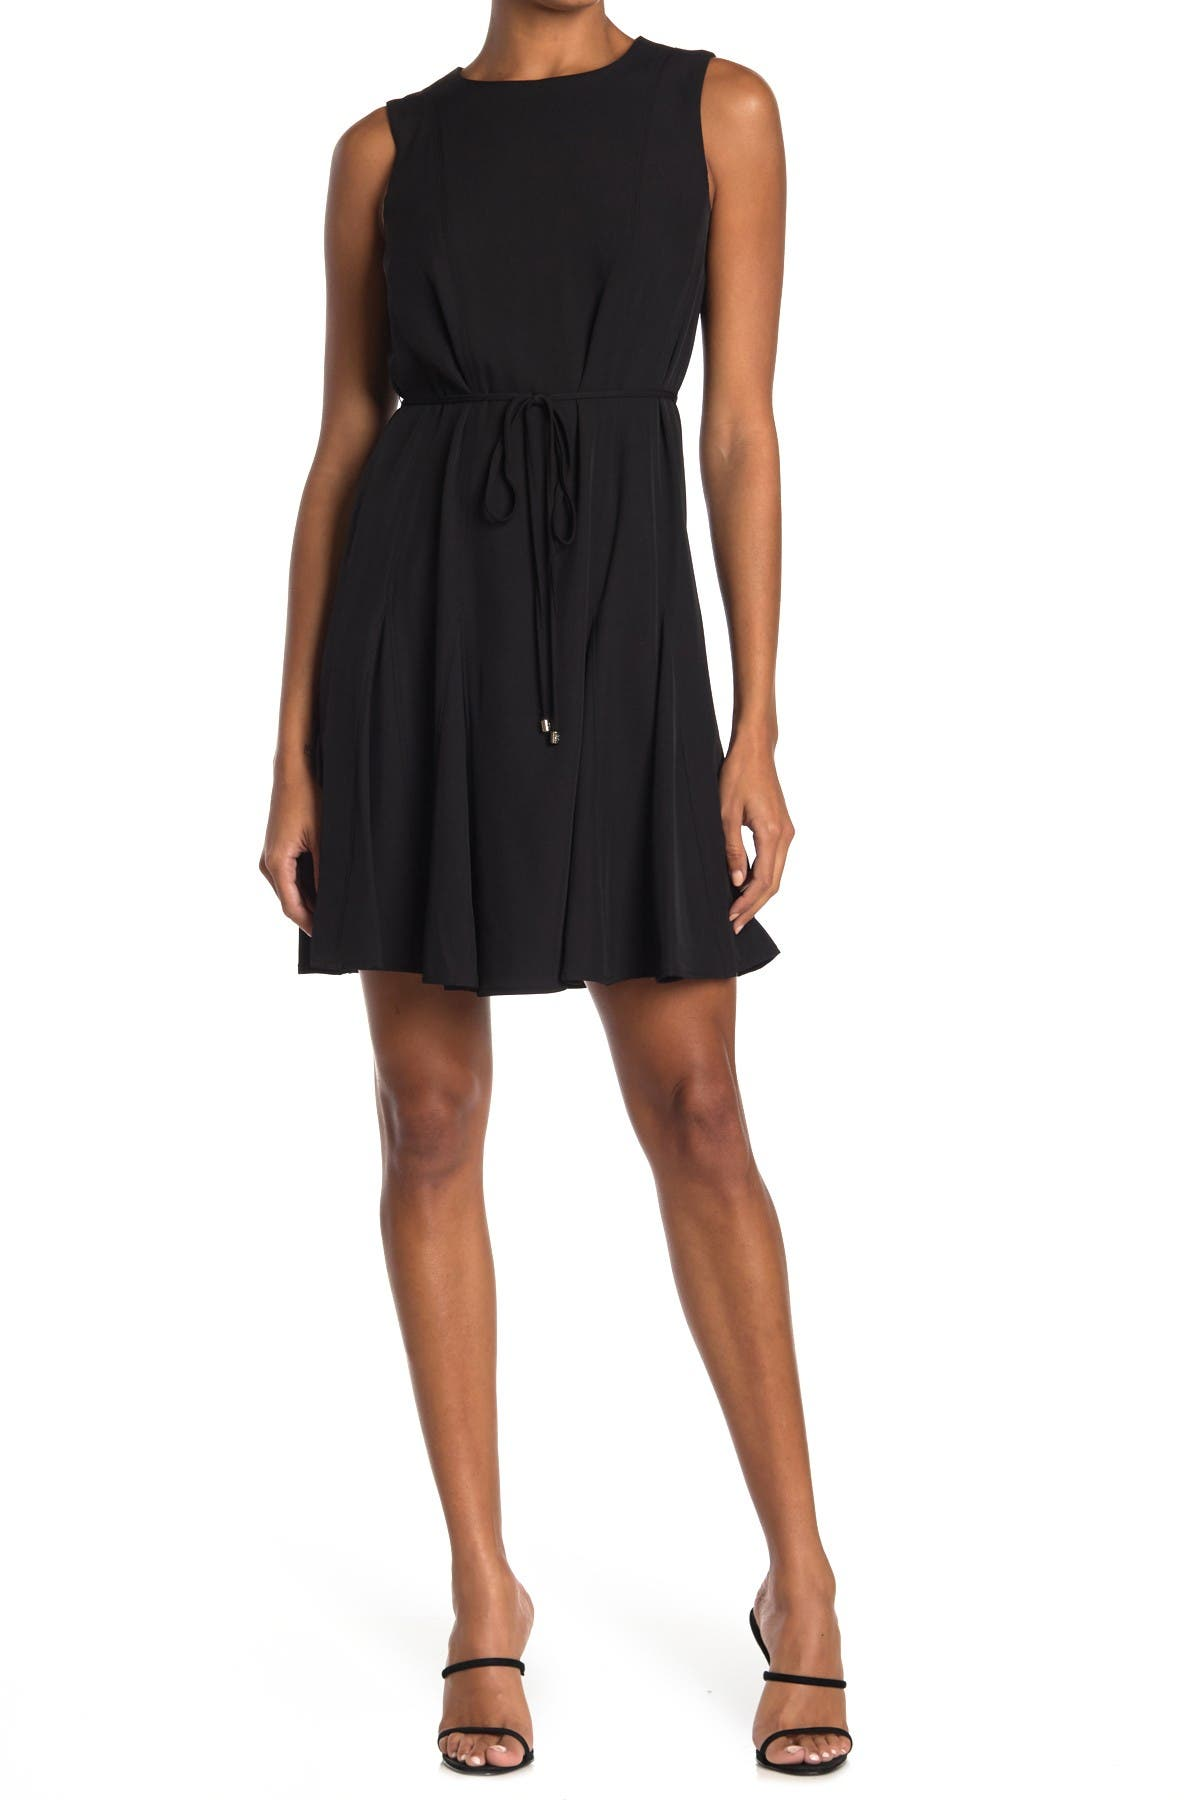 Image of Tommy Hilfiger Sleeveless Tie Waist Fit & Flare Dress